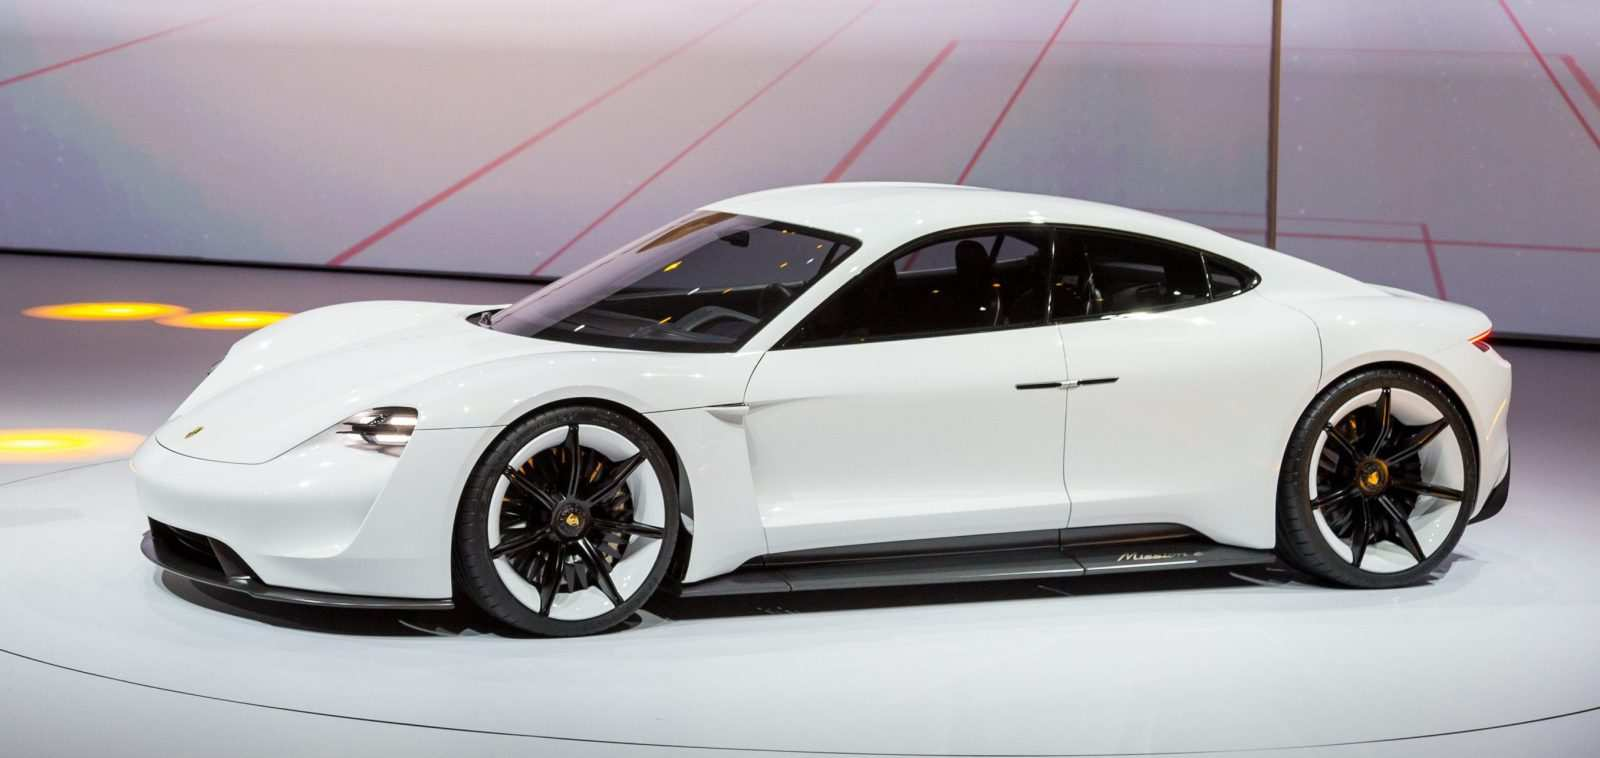 71 The Best 2020 Porsche Electric Car Performance And New Engine